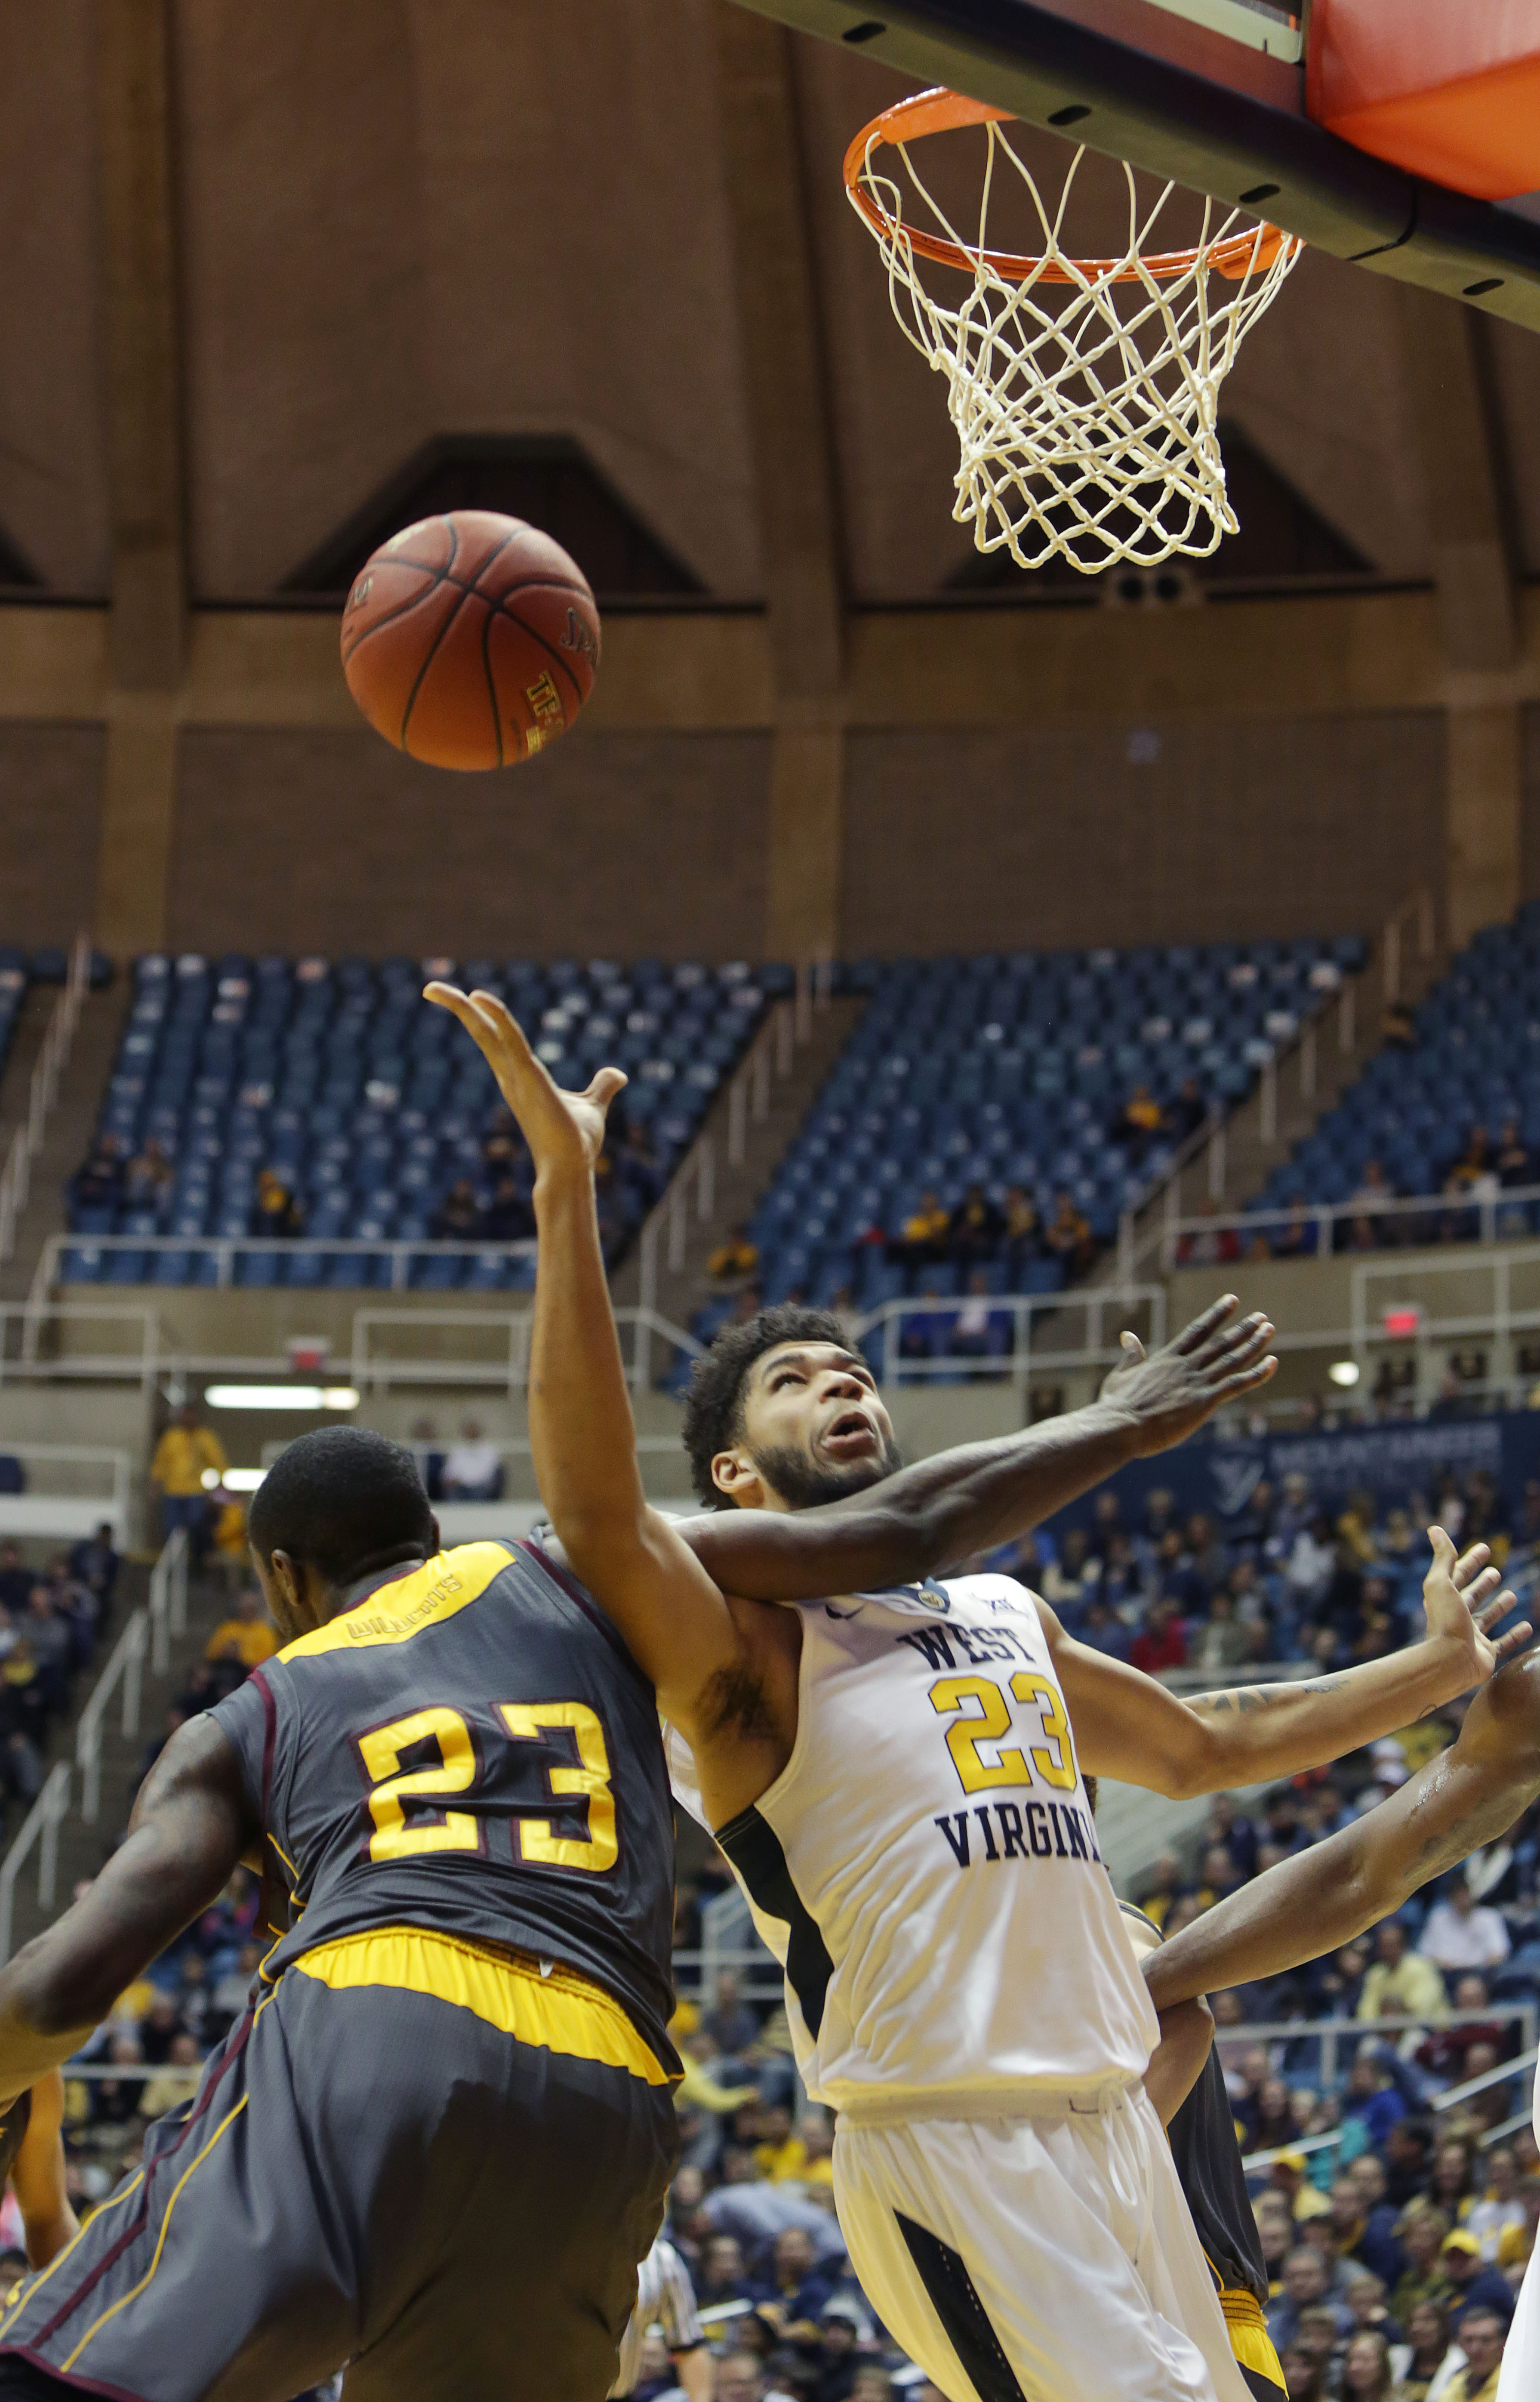 West Virginia forward Esa Ahmad (23) attempts a shot as Bethune-Cookman forward Mario Moody (23) goes for the block during the first half of an NCAA college basketball game Monday, Nov, 23, 2015, in Morgantown, W.Va. (AP Photo/Raymond Thompson)